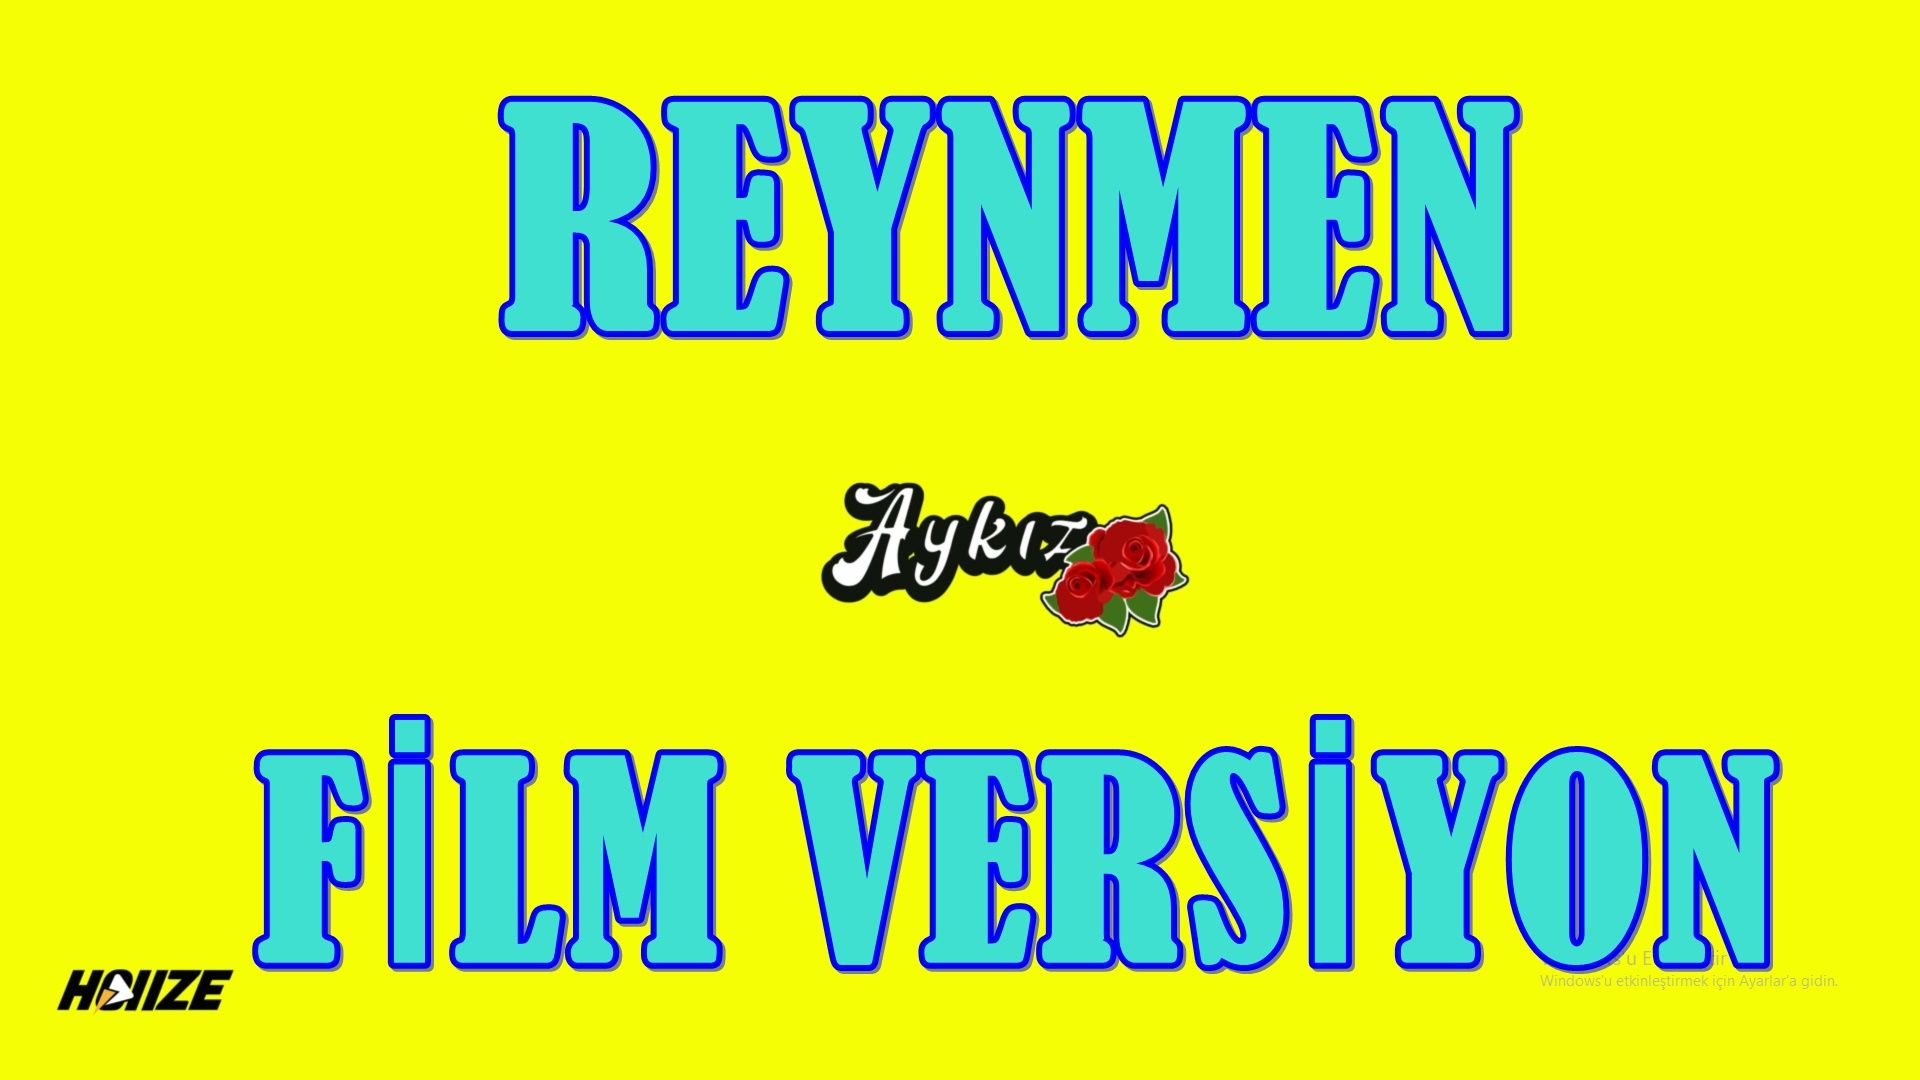 Reynmen Aykiz Film Versiyon Movie Version 06 06 2020 In 2020 Youtube Film Movies